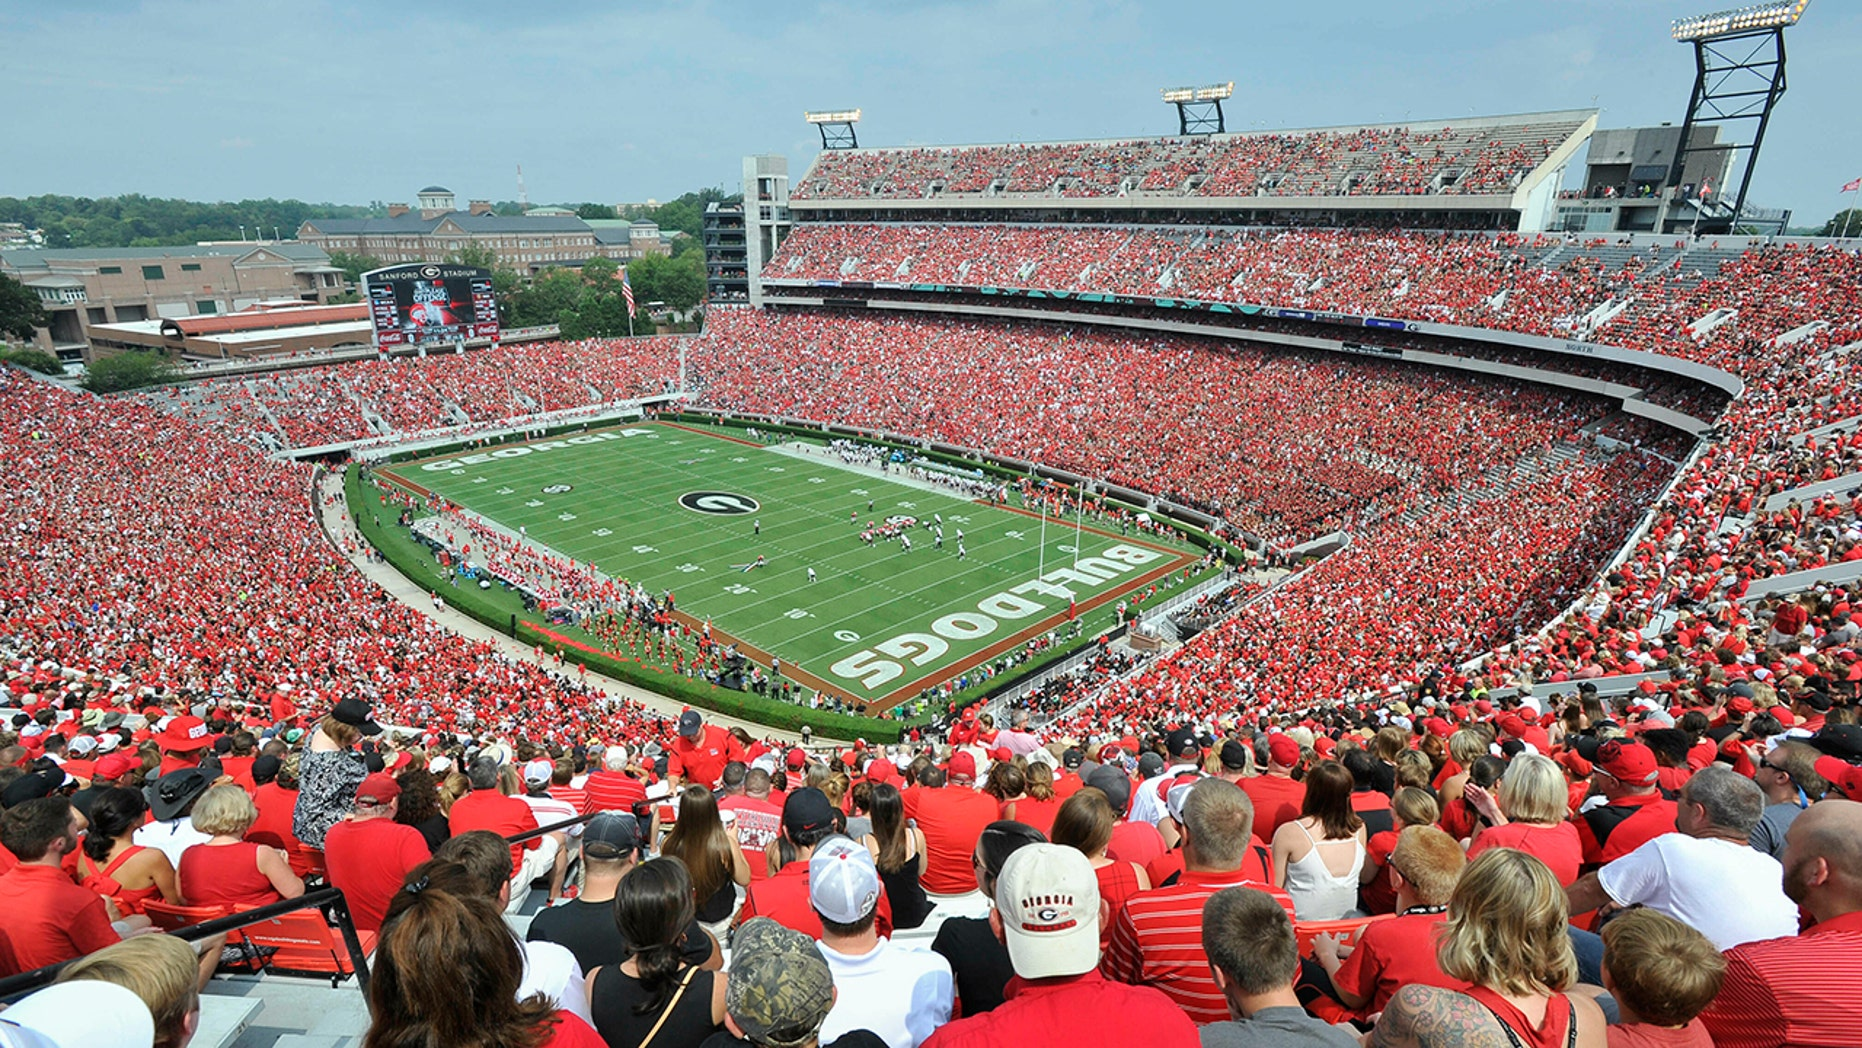 In this Sept. 5, 2015, photo, Georgia fans watch the season opening game against Louisiana Monroe at Sanford Stadium during an NCAA college football game in Athens, Ga. (AP Photo/John Amis)